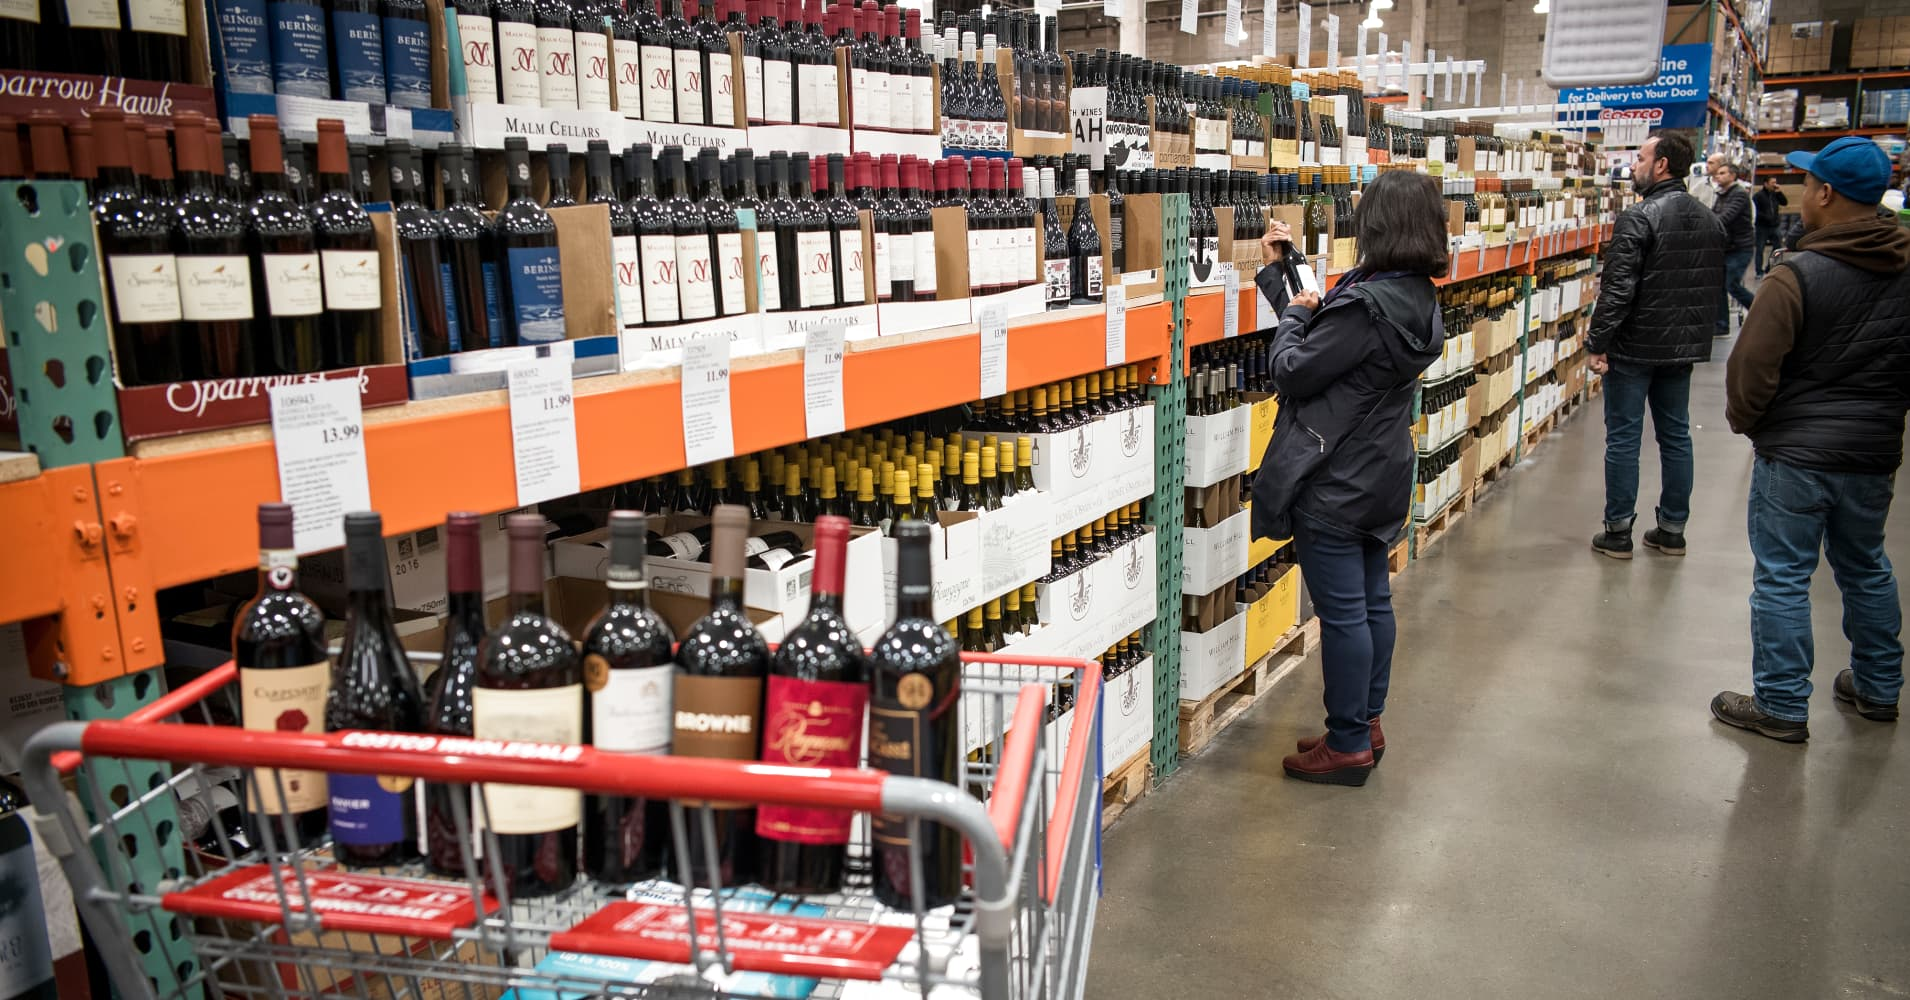 Customers browse wine for sale at a Costco  store in San Francisco in December 2018.